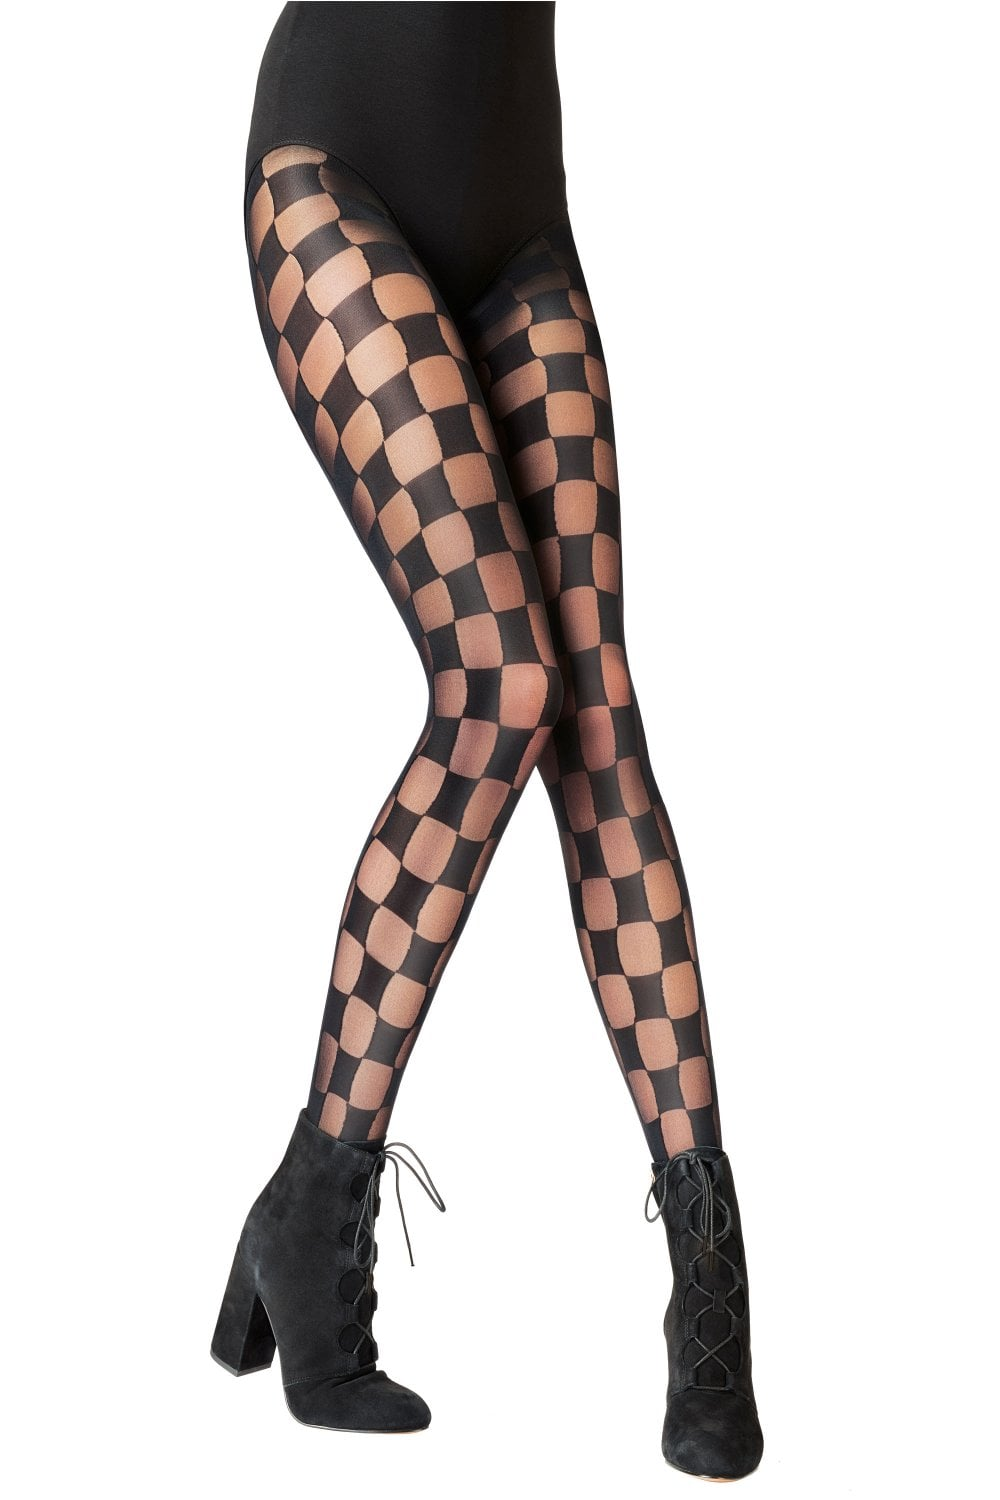 84a89209efe0f House of Holland Checkerboard Tights AVE5